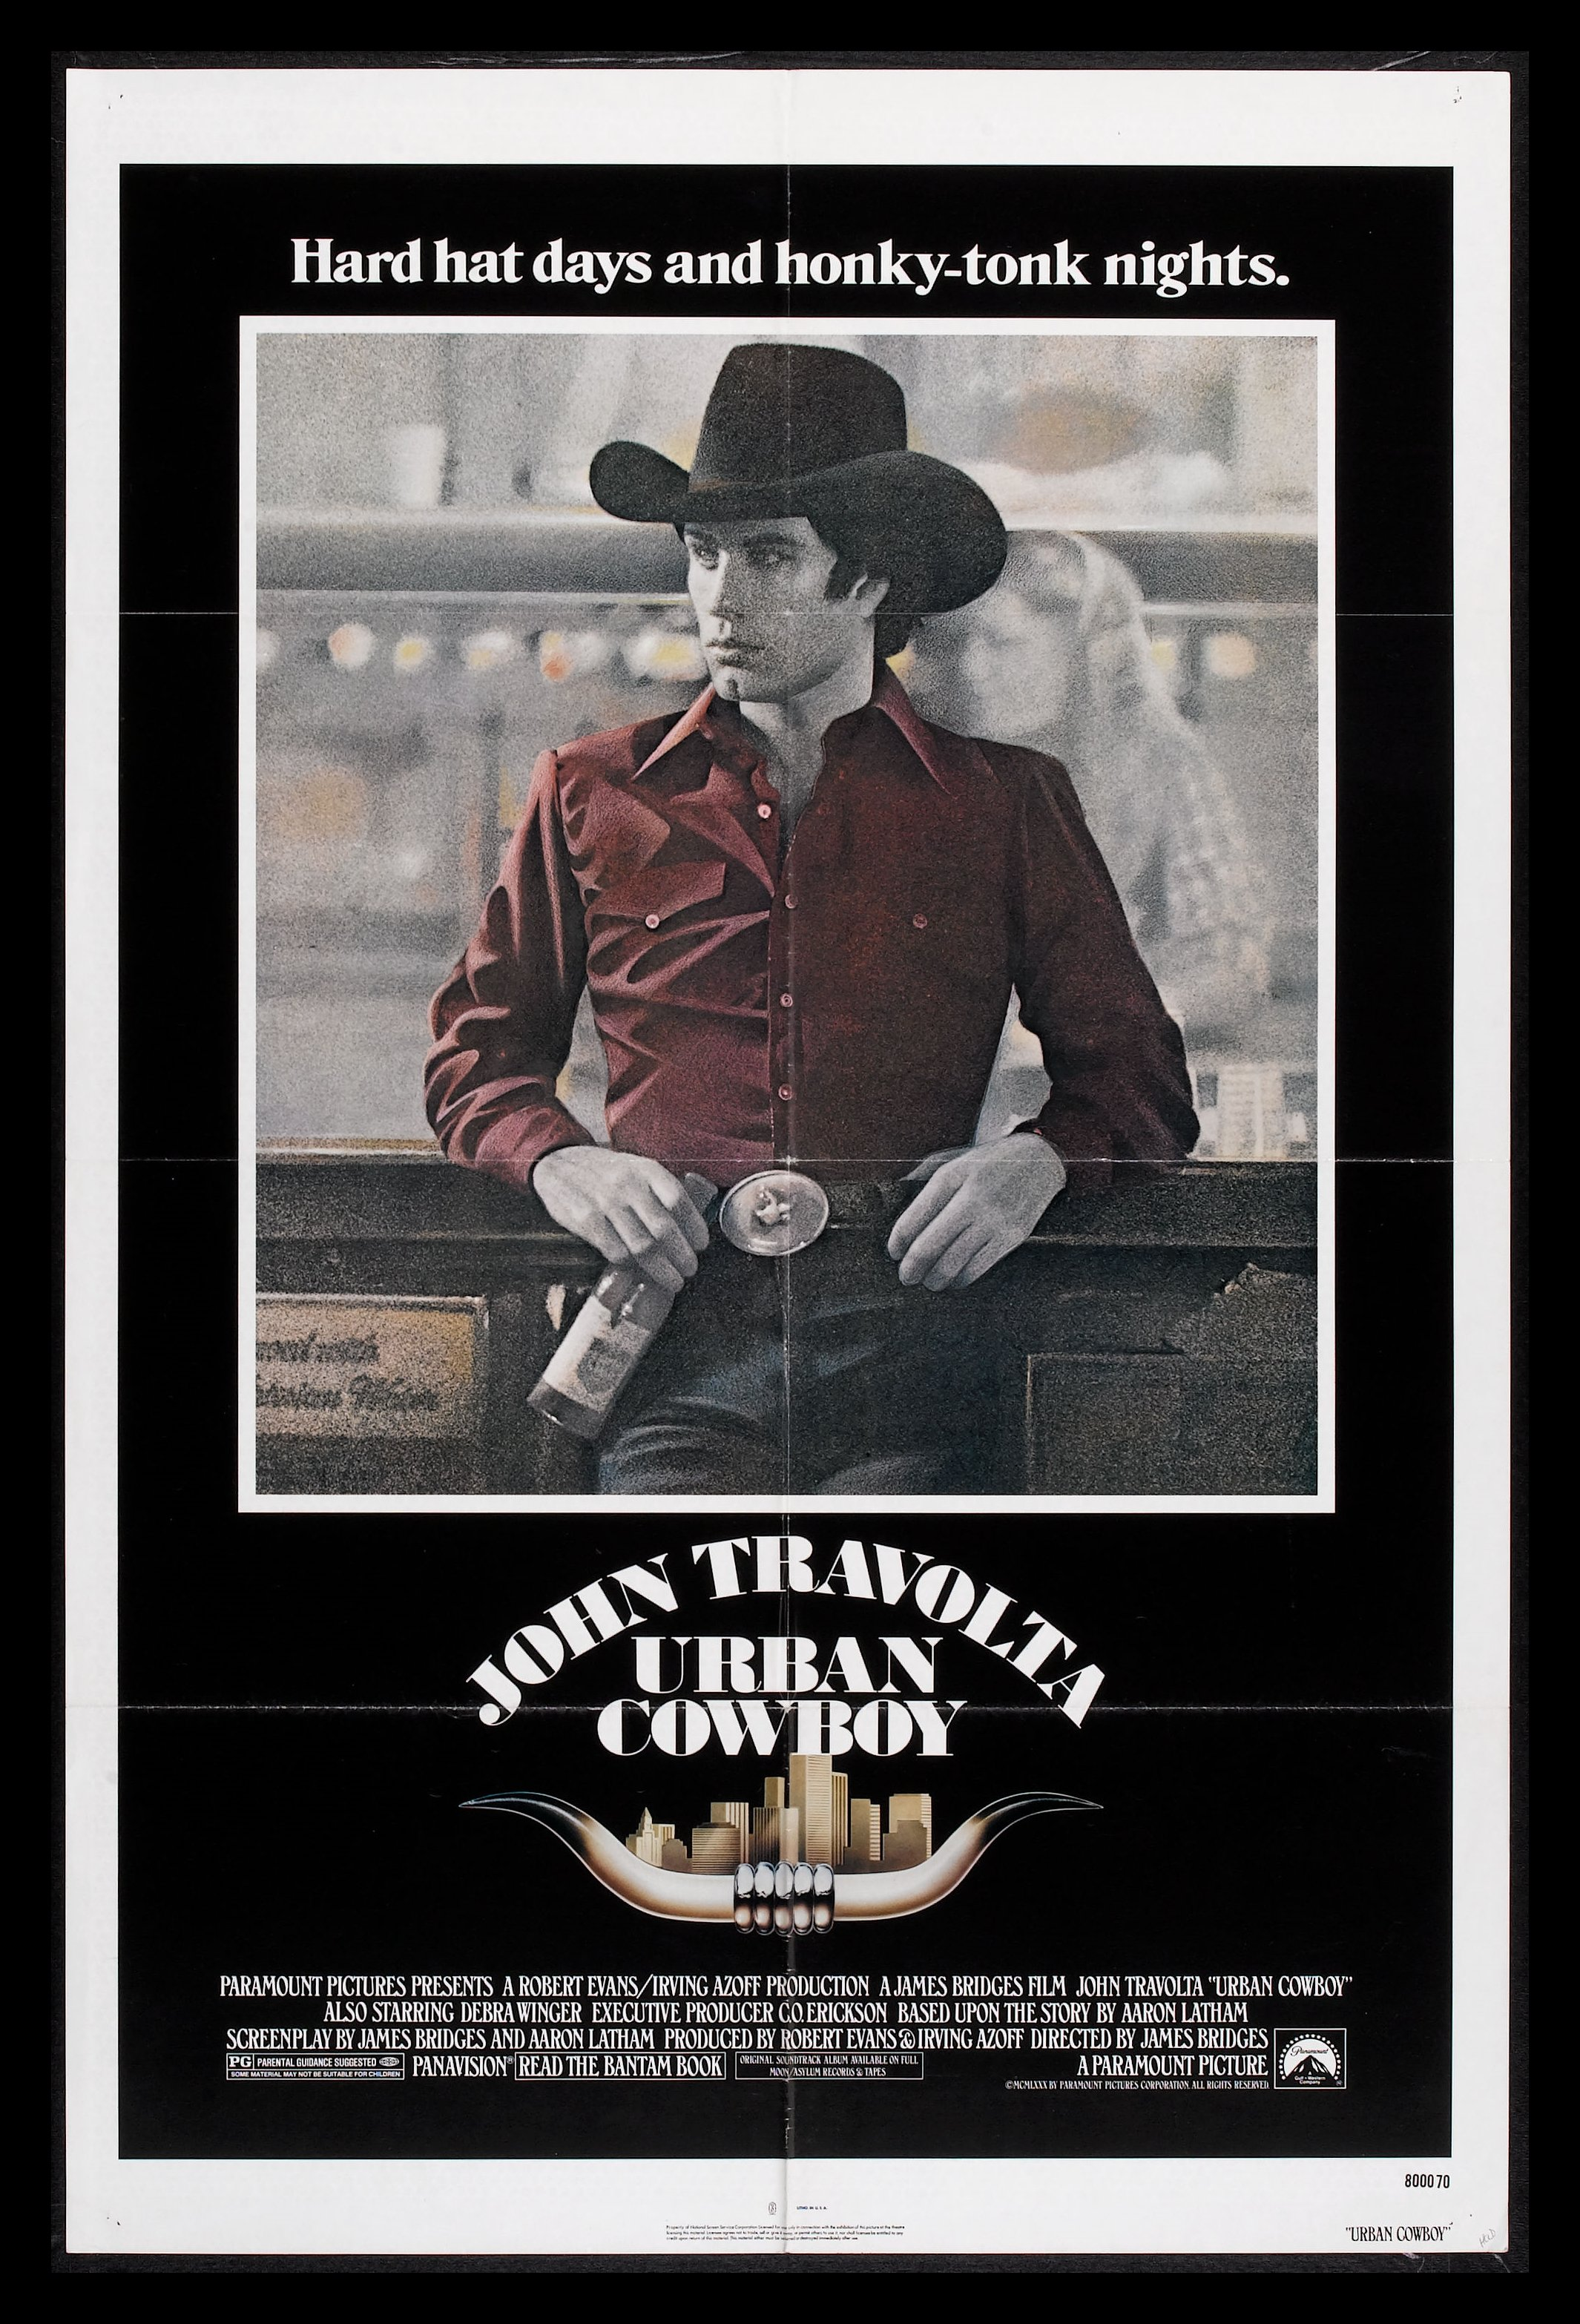 Poster for Urban Cowboy